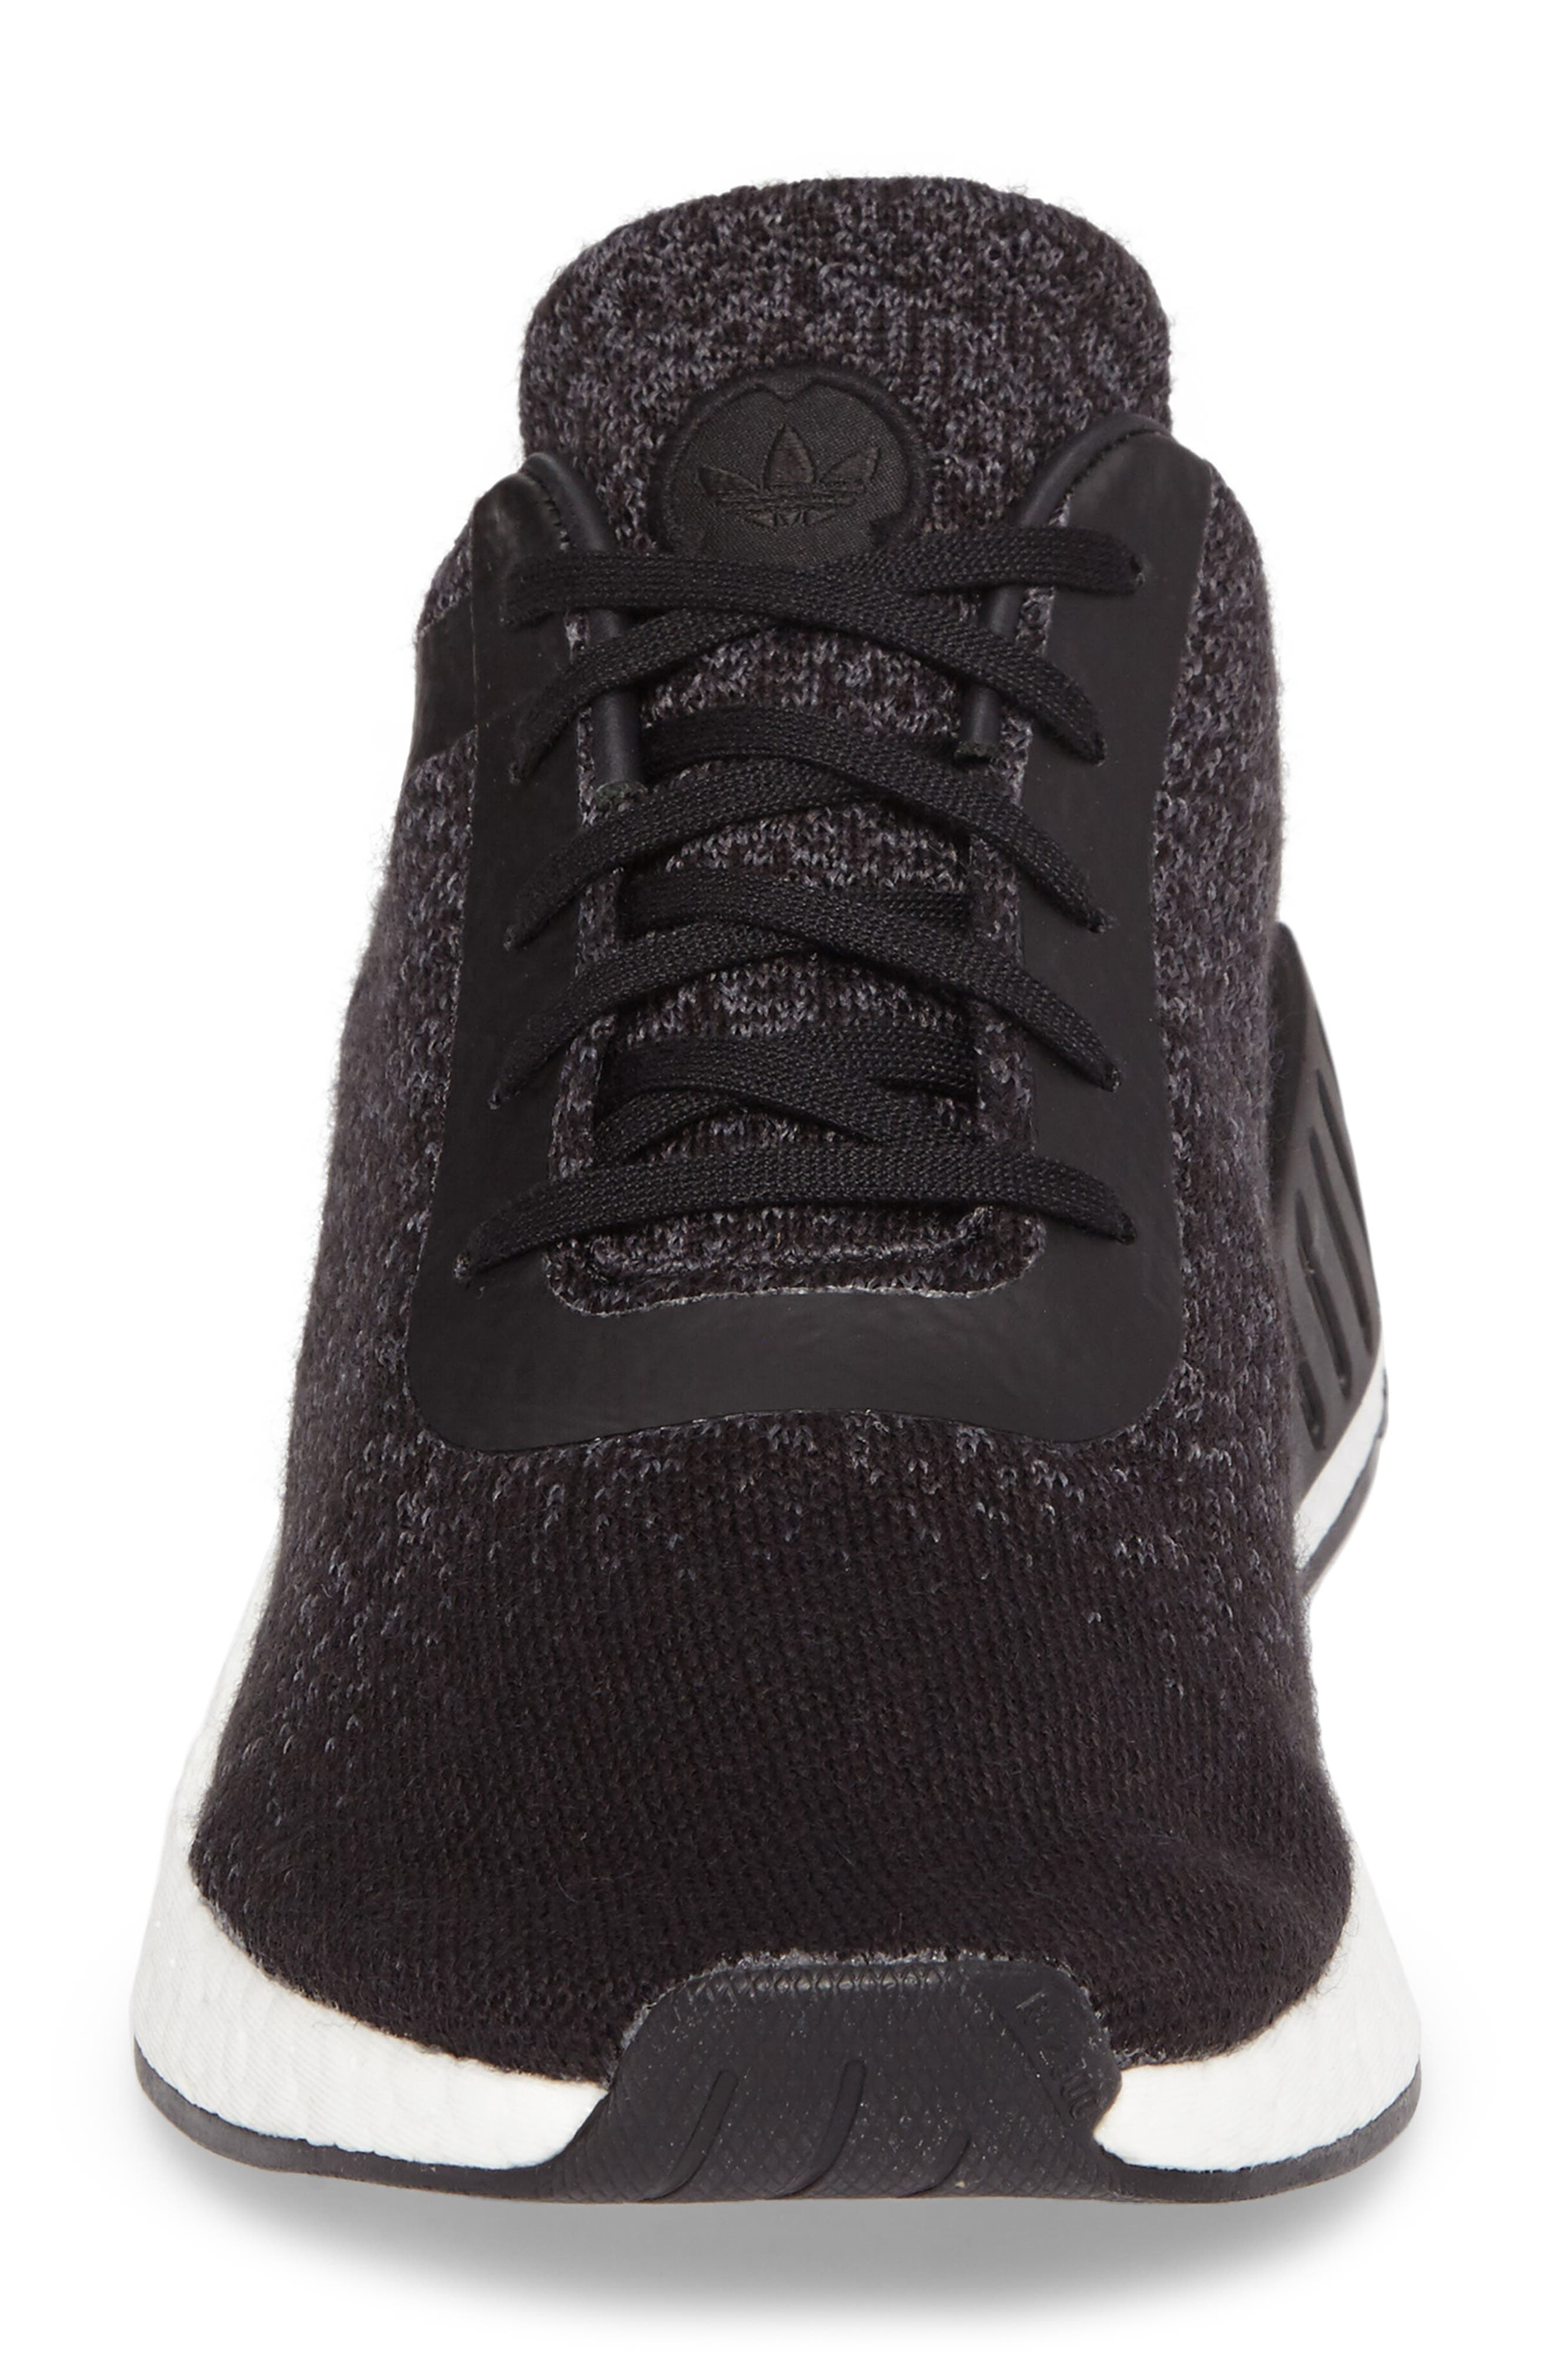 adidas x wings + horns Primeknit NMD_R2 Sneaker,                             Alternate thumbnail 4, color,                             001